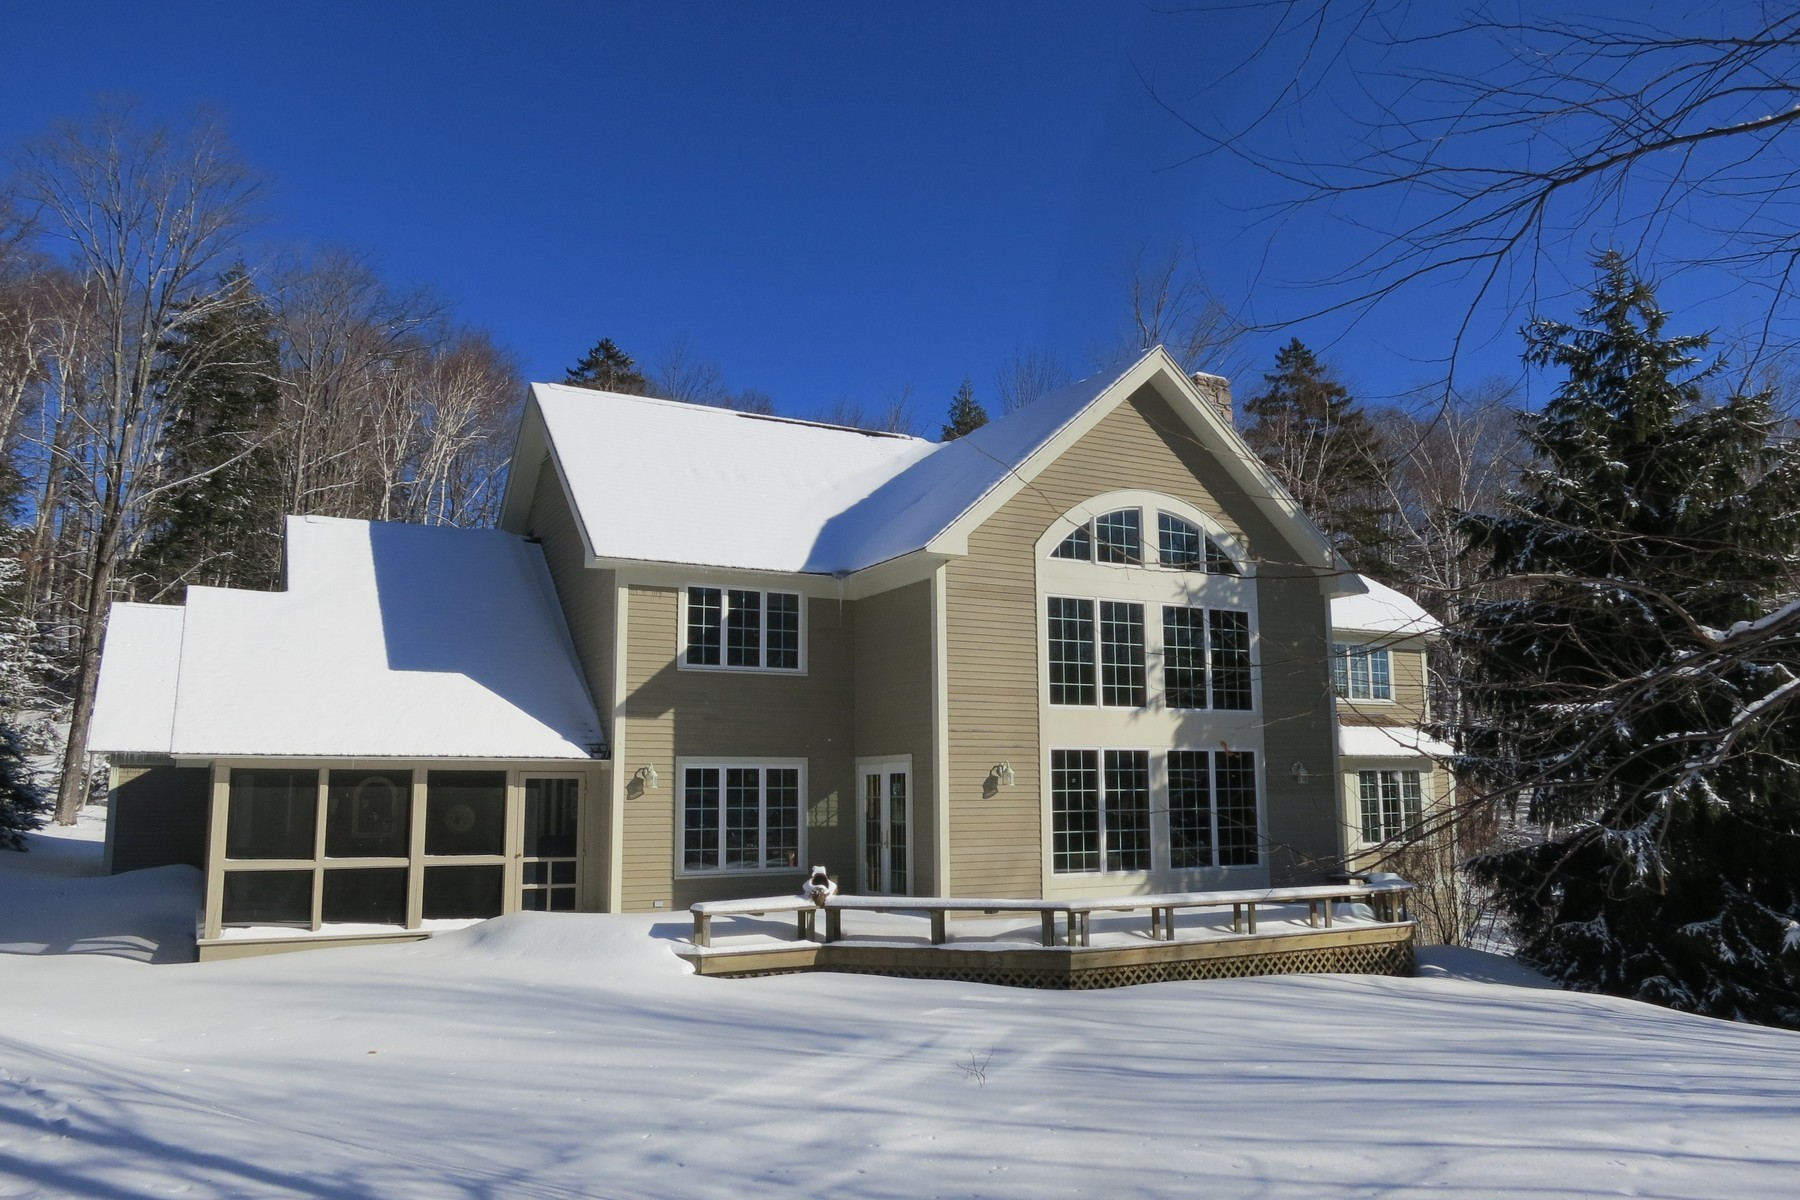 Single Family Home for Sale at Stratton Stonehouse Road 14 Stonehouse Rd Winhall, Vermont, 05340 United States